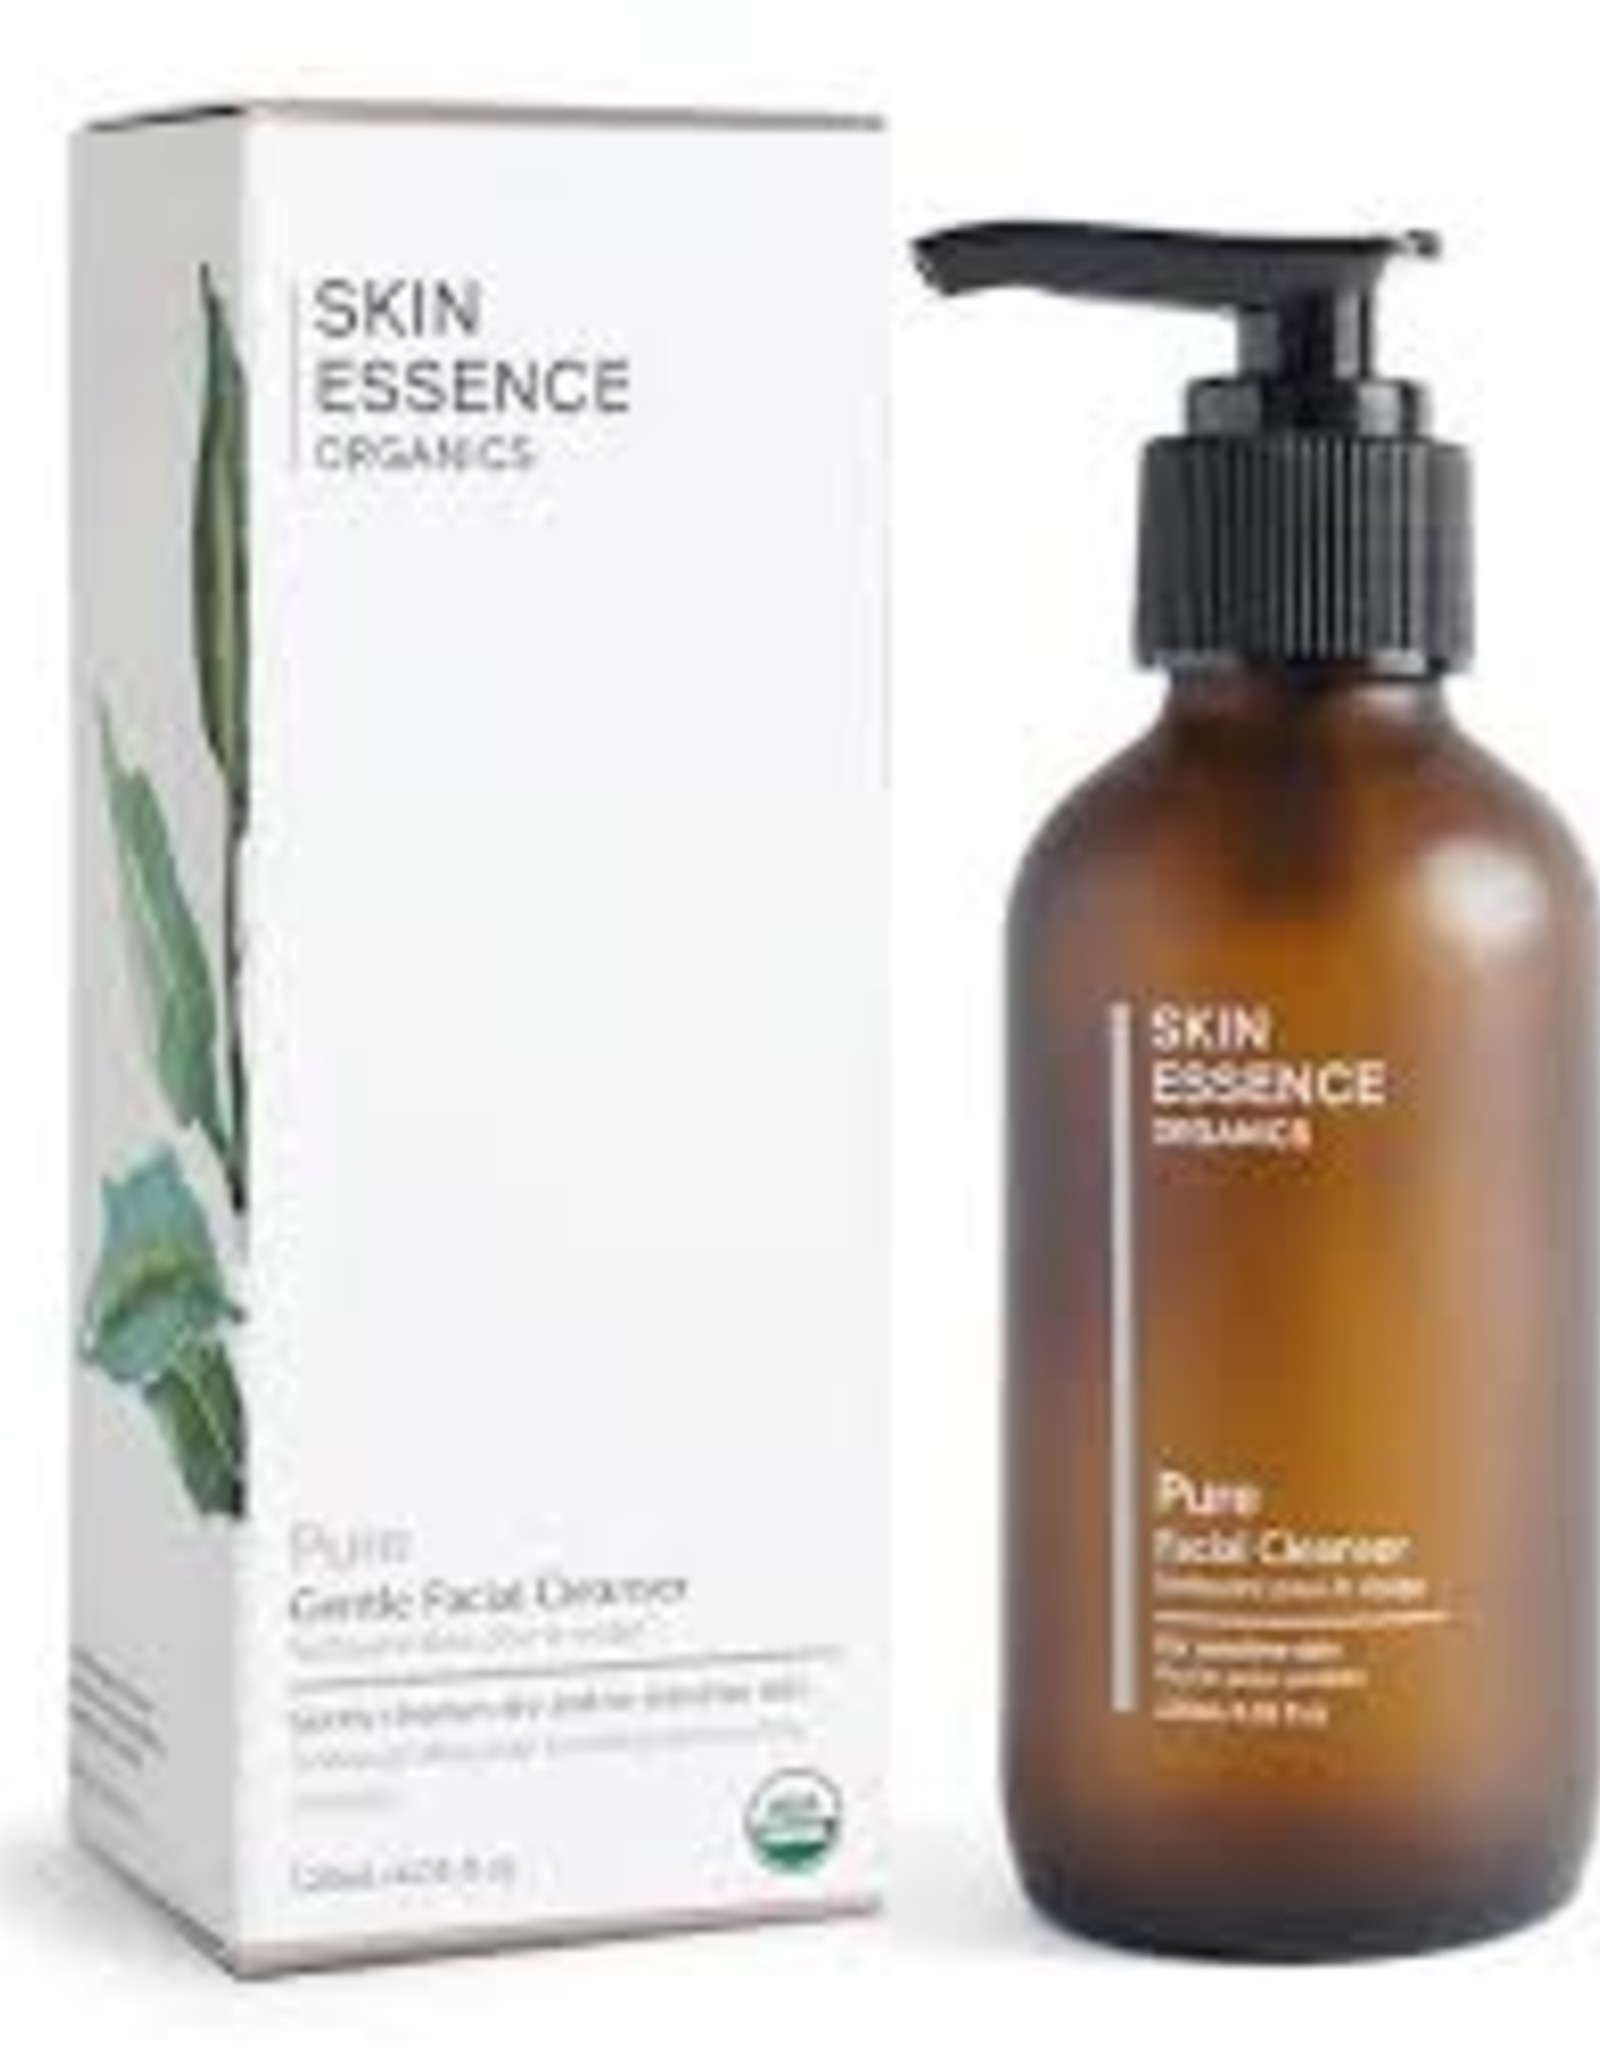 Skin Essence Organics Skin Essence Organics - Facial Cleanser, Pure